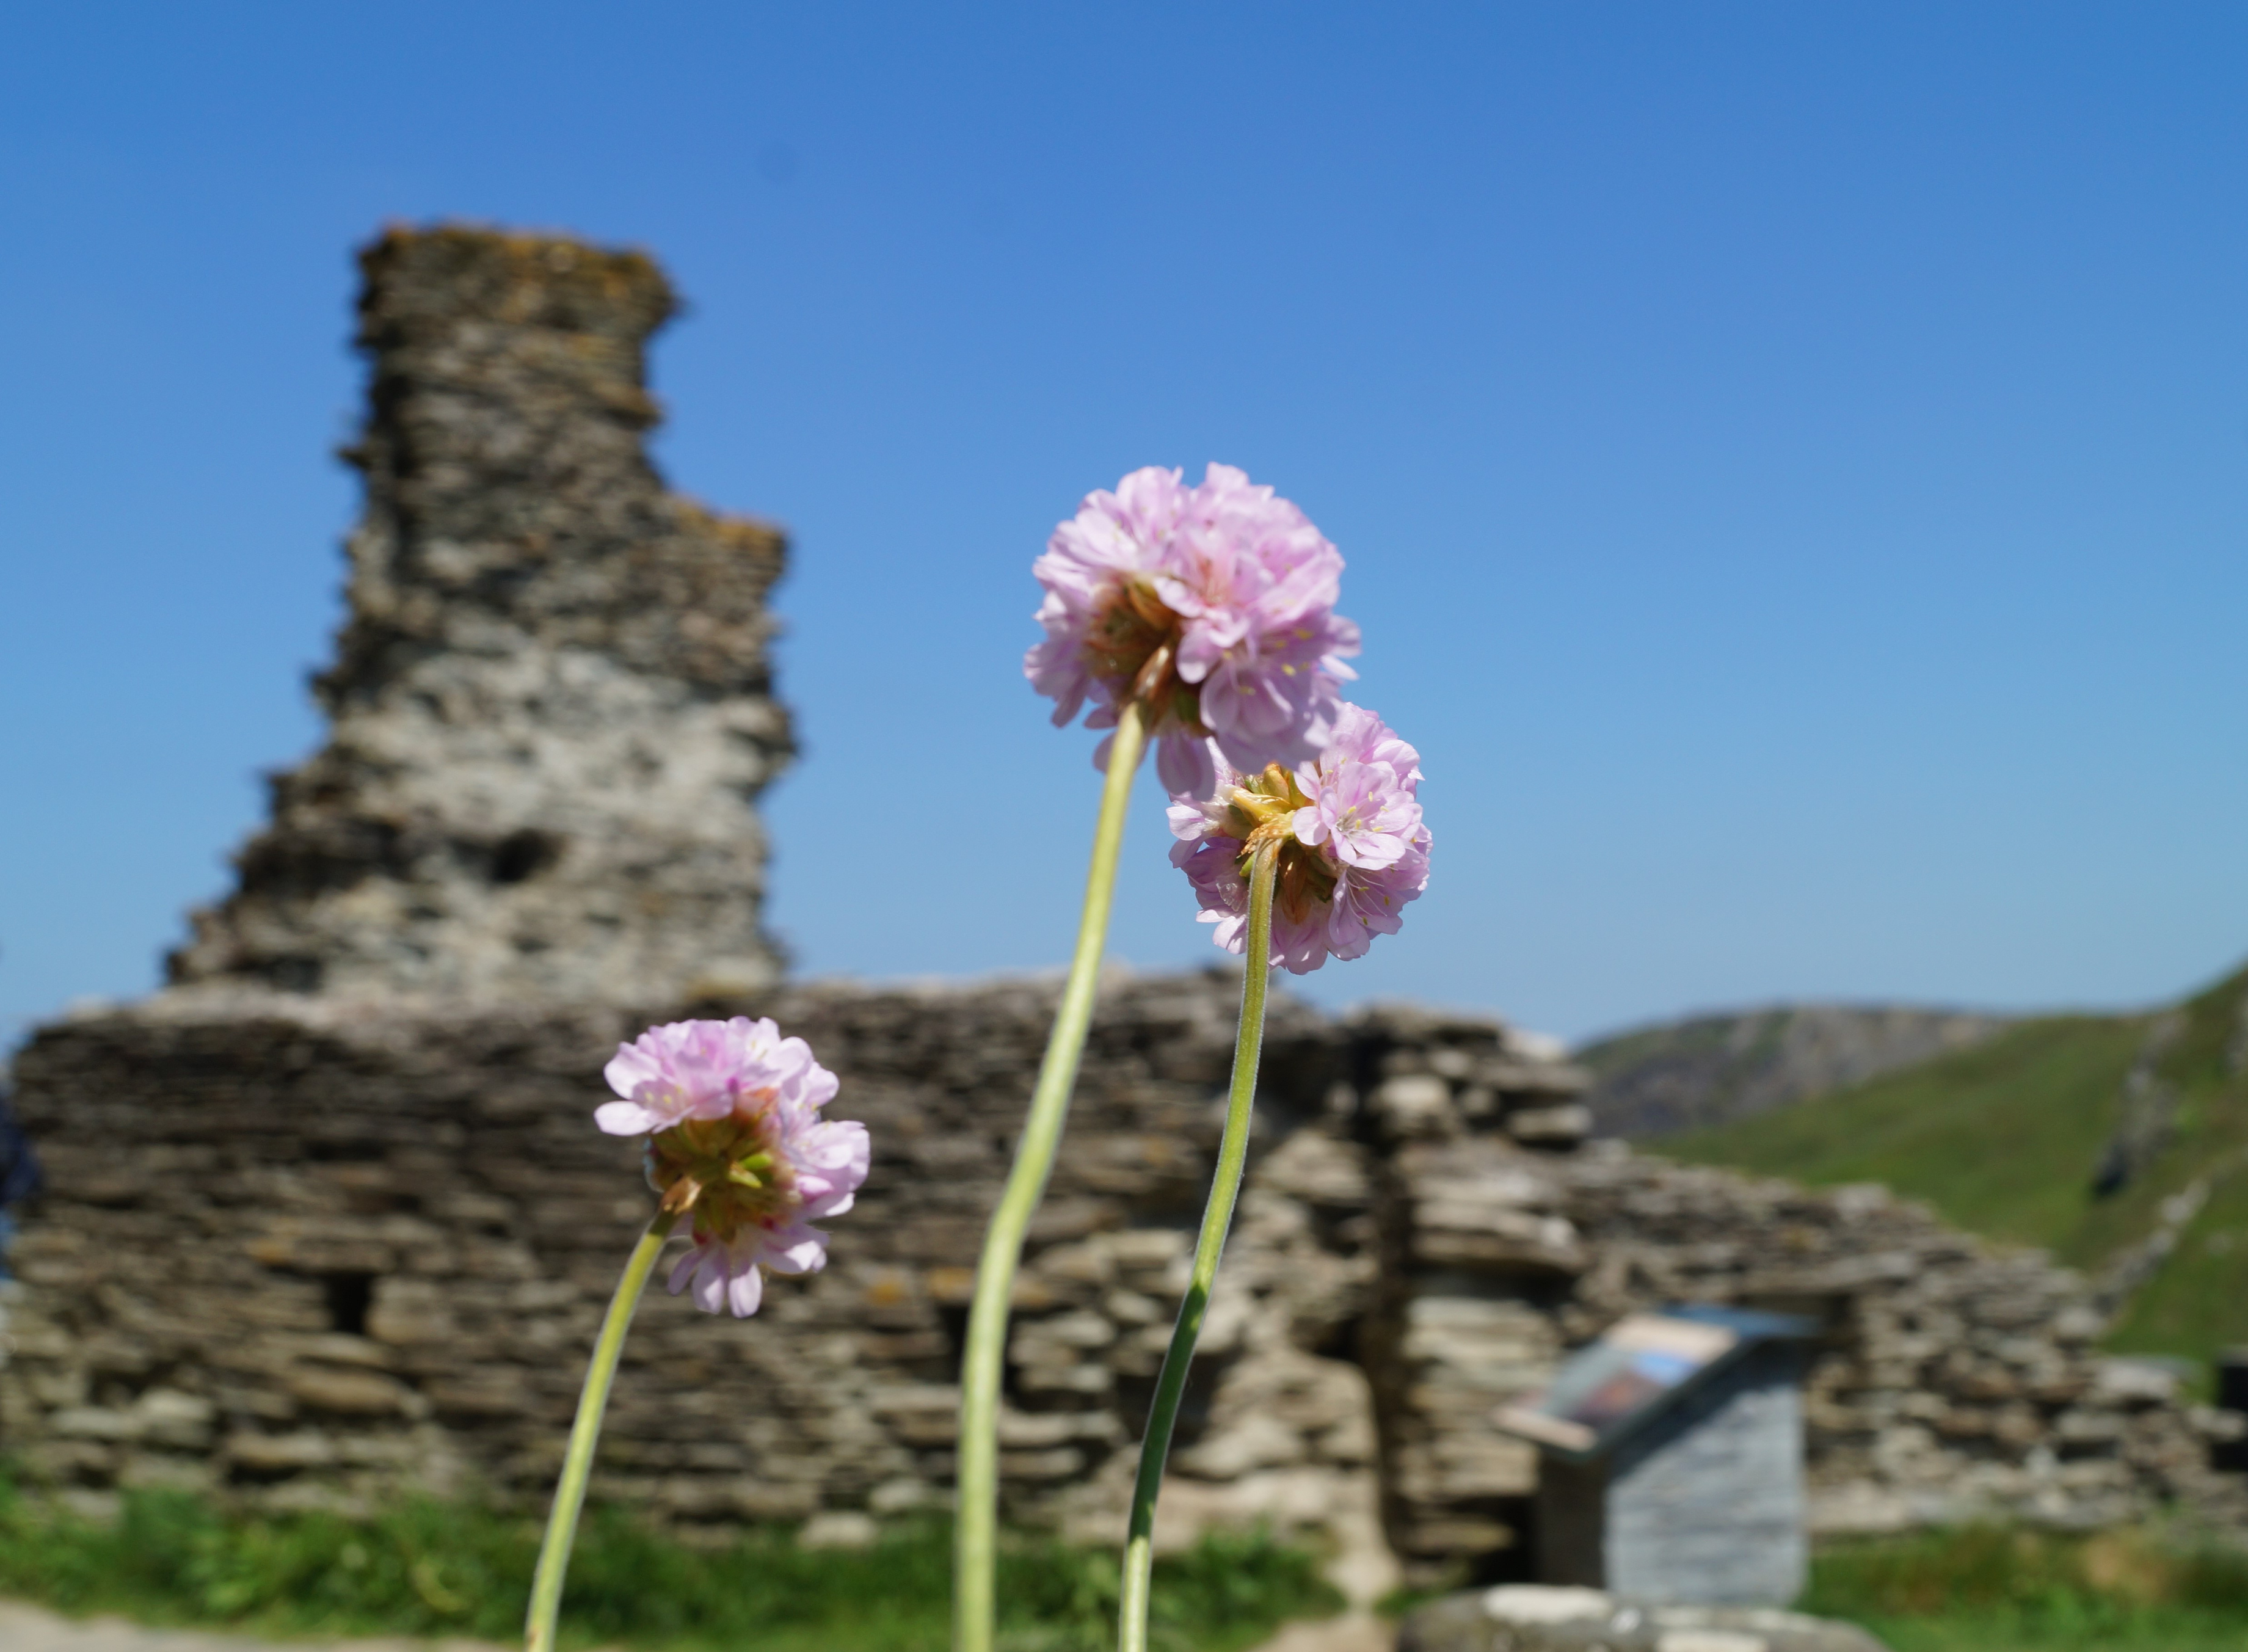 Part of Tintagel castle in the background with pink flowers in the foreground